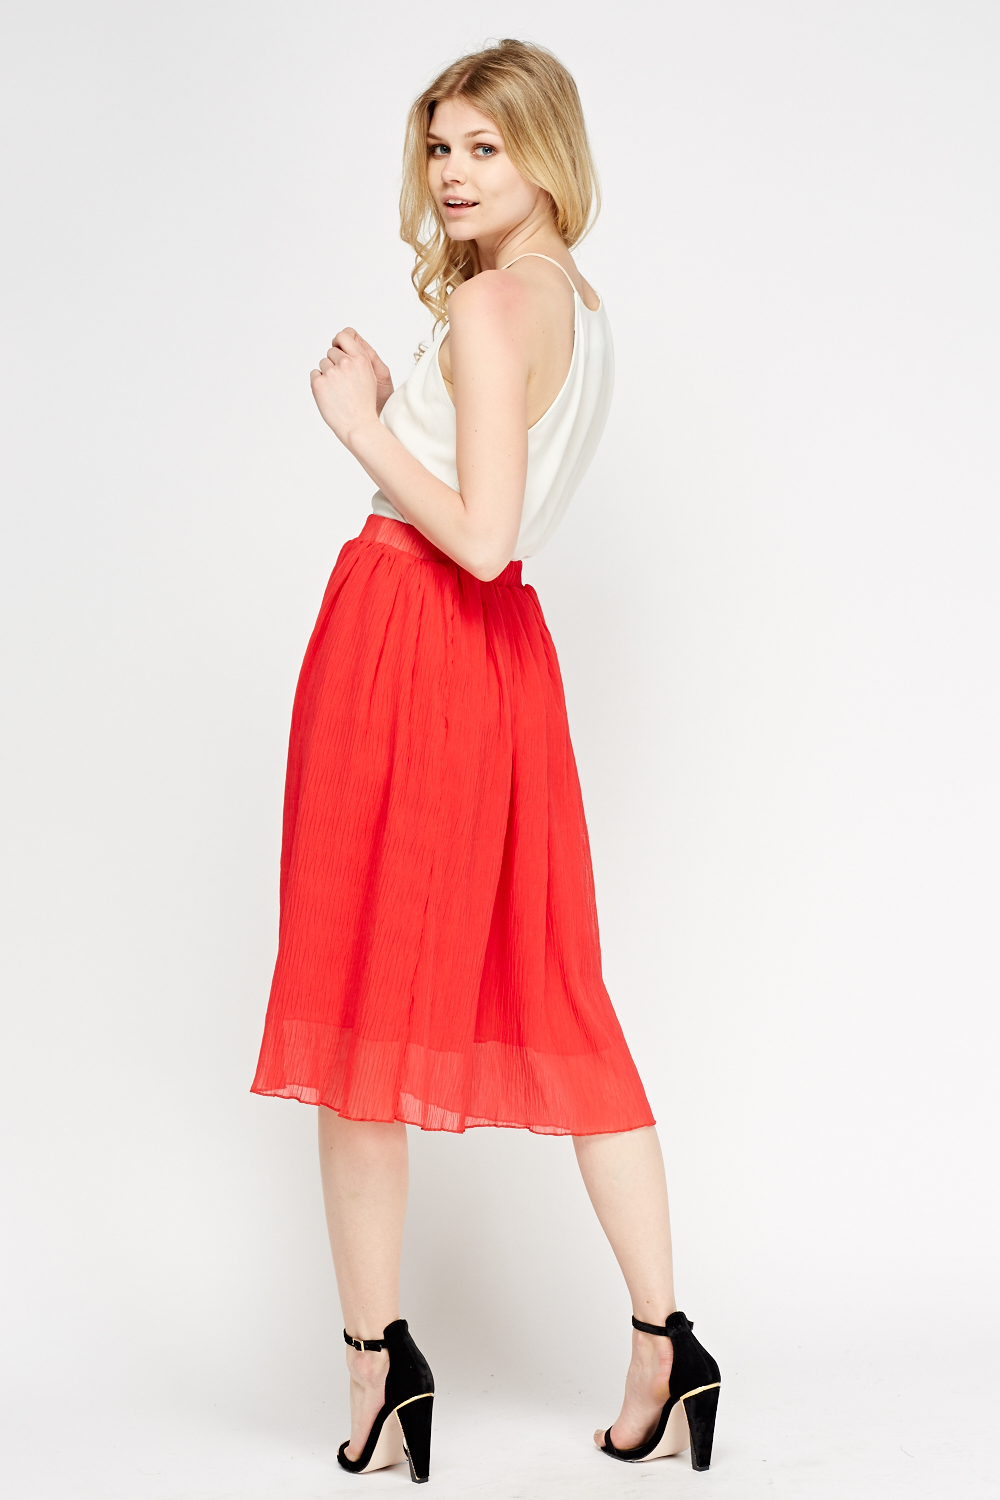 Red Pleated Midi Skirt - Just £5